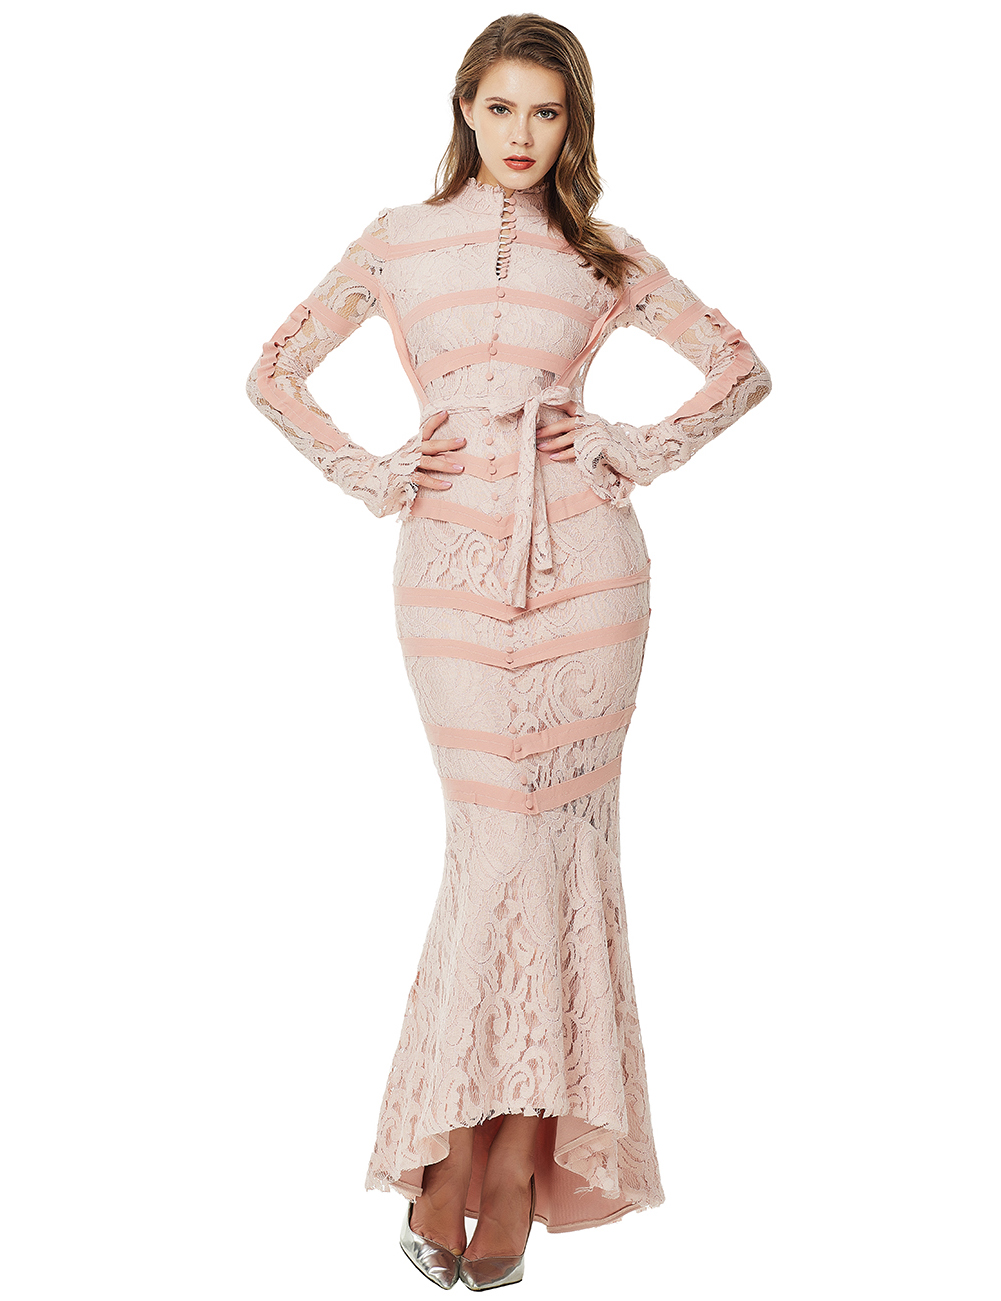 //cdn.affectcloud.com/hexinfashion/upload/imgs/Dress/Bandage_Dress/VZ190588-BE1/VZ190588-BE1-201911055dc120a52718a.jpg